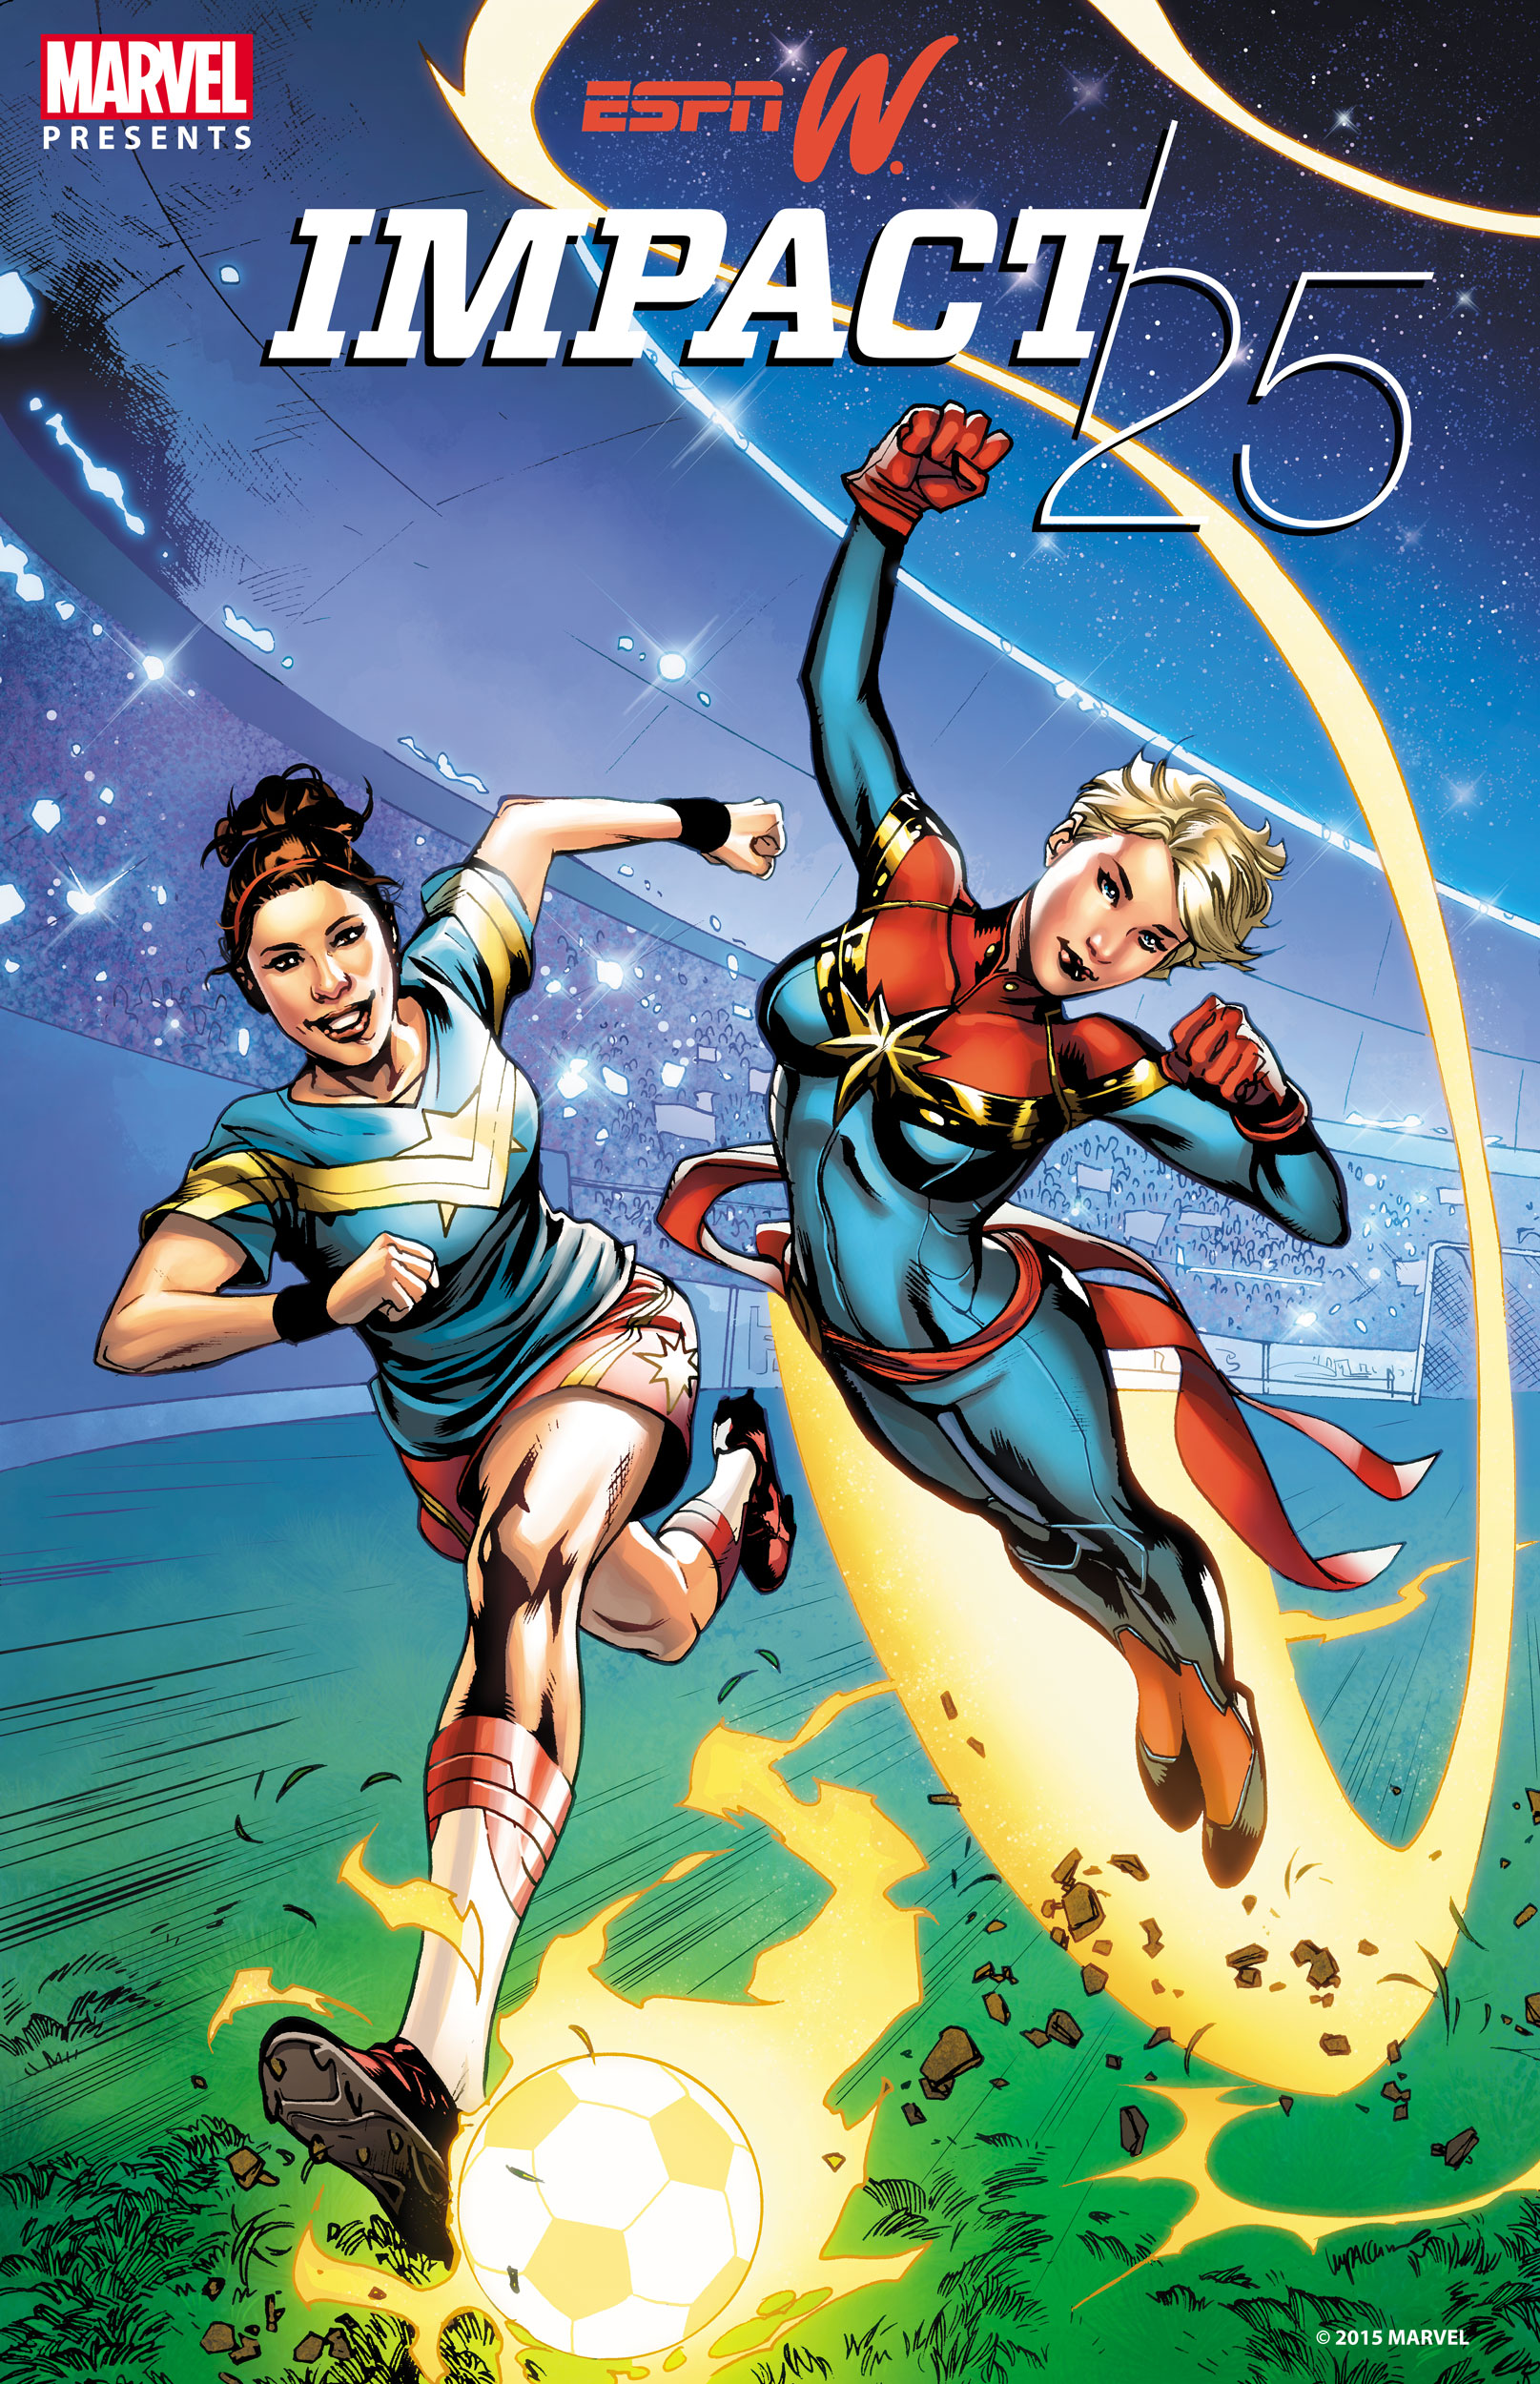 Marvel and espnW Team Up to Honor Real Sports Heroes